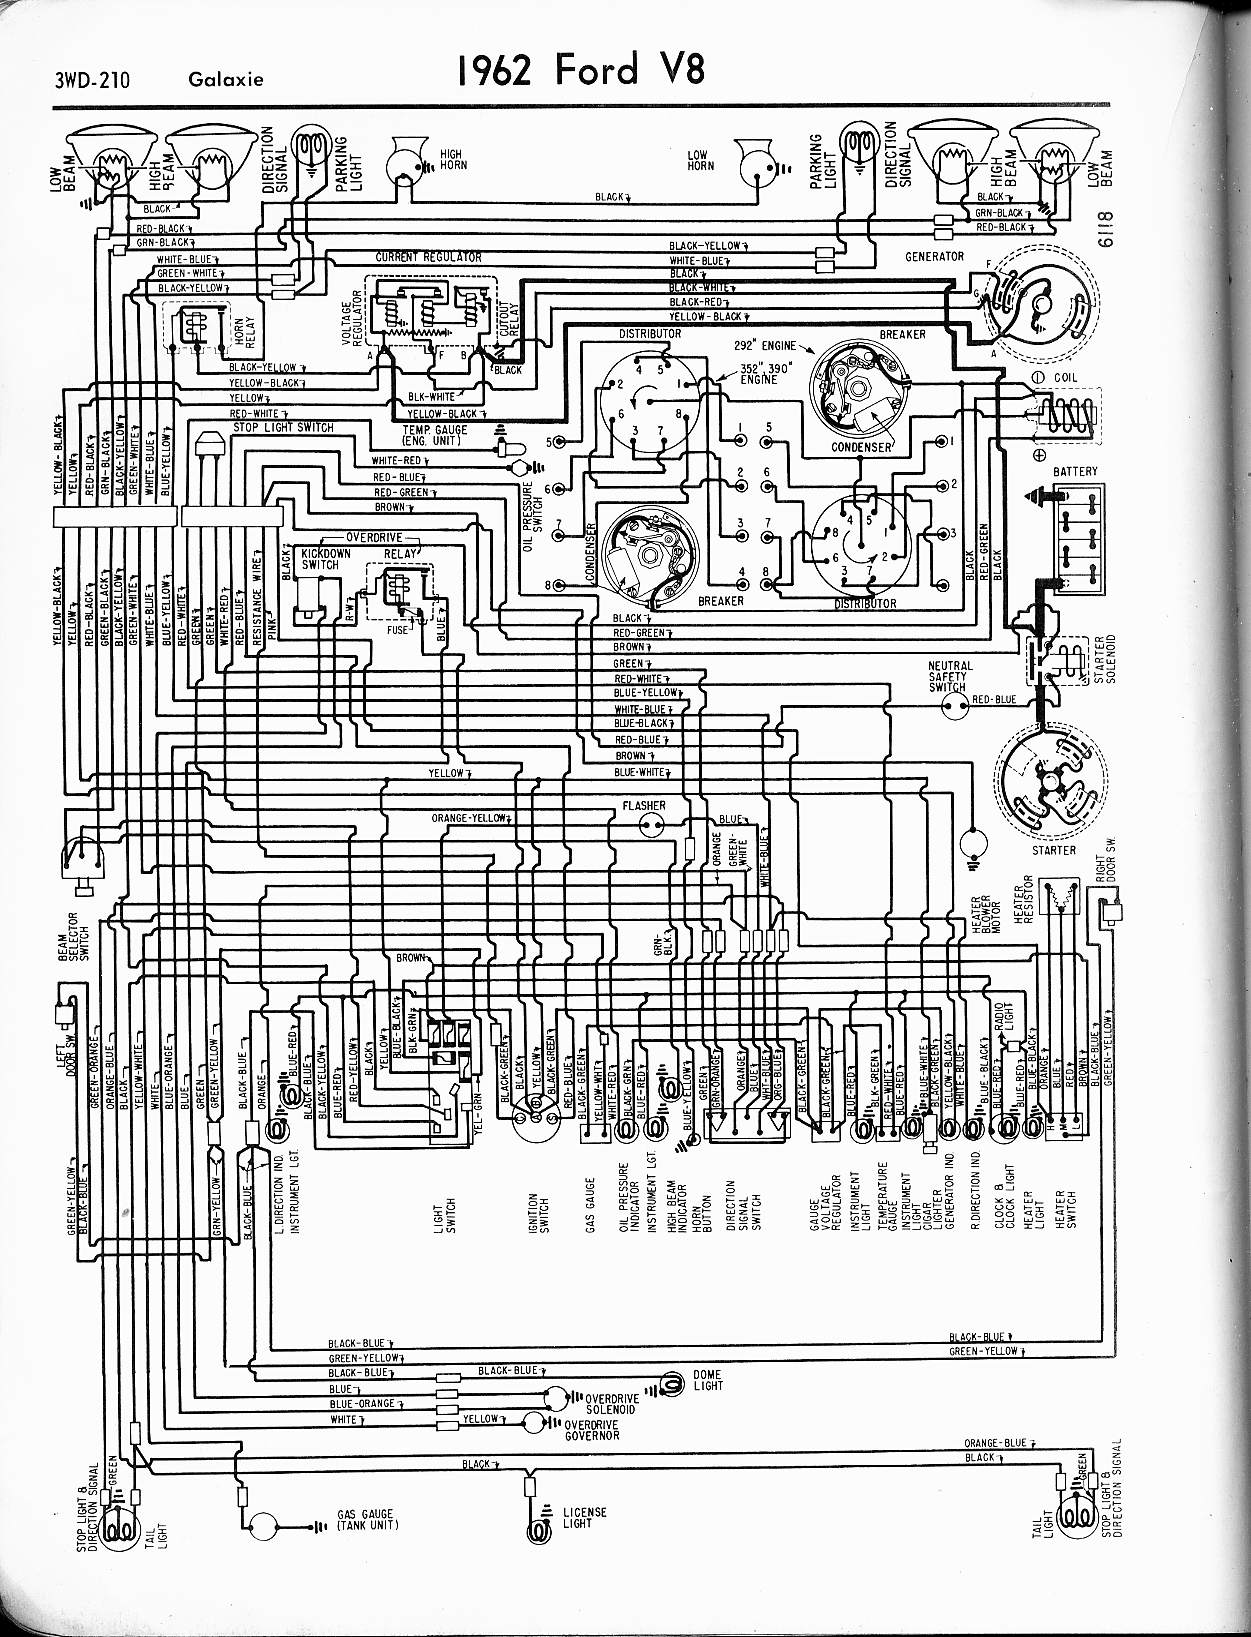 1966 Mustang Engine Diagram Reinvent Your Wiring 1965 Ford 1963 Galaxie Detailed Schematics Rh Lelandlutheran Com